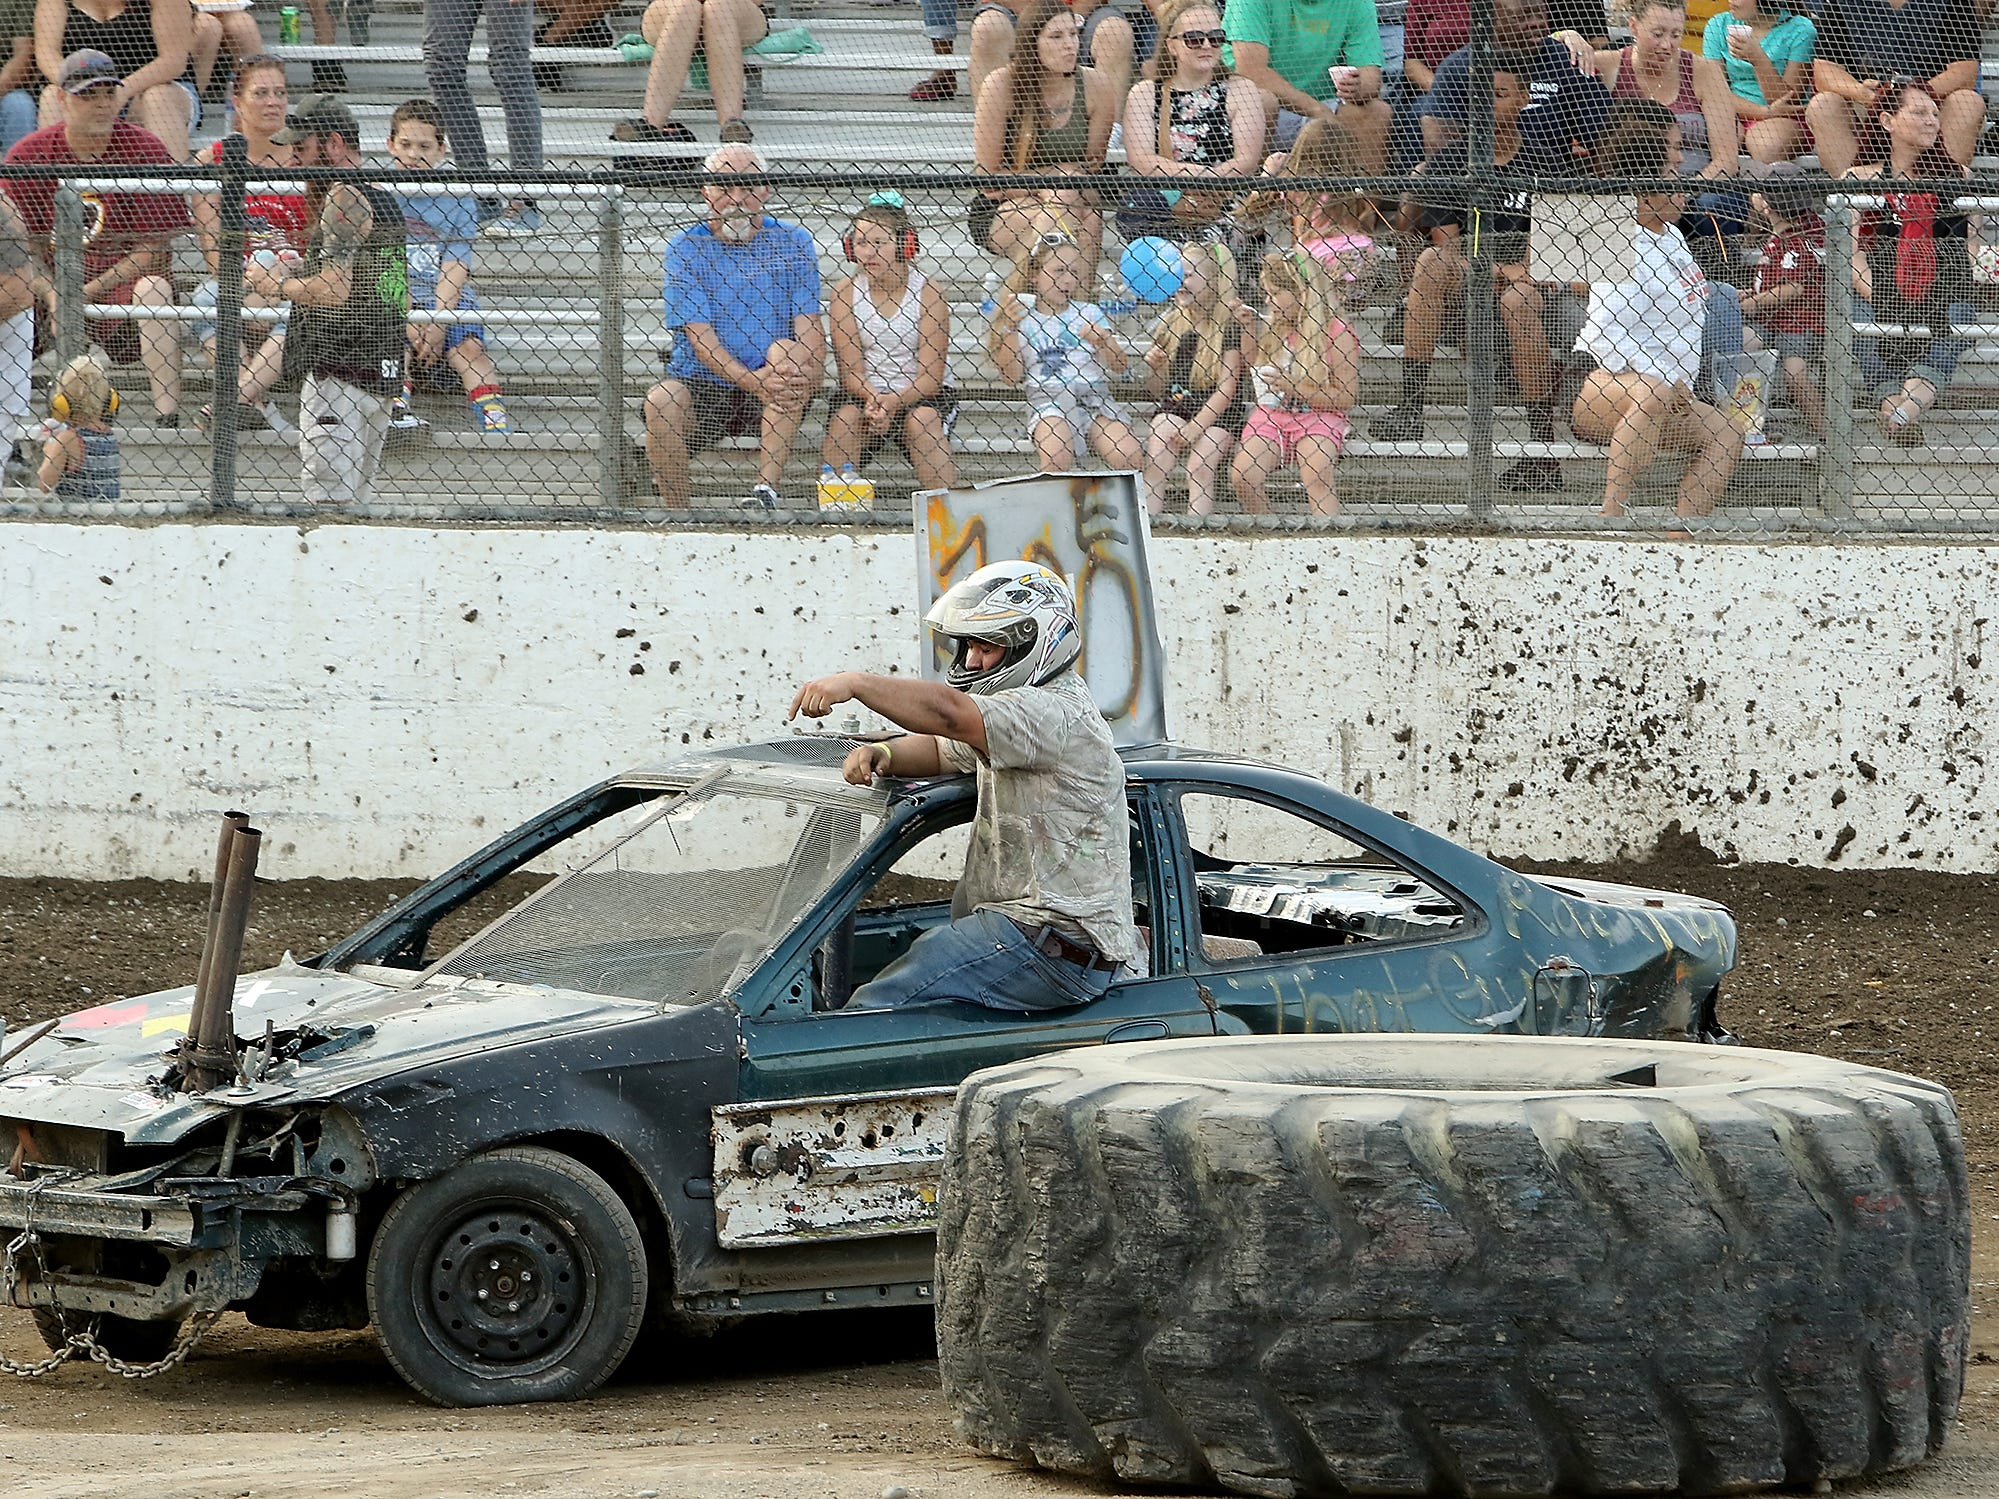 Kitsap Destruction Derby at Thunderbird Arena at the Kitsap County Fairgrounds on Saturday, July 28, 2018.